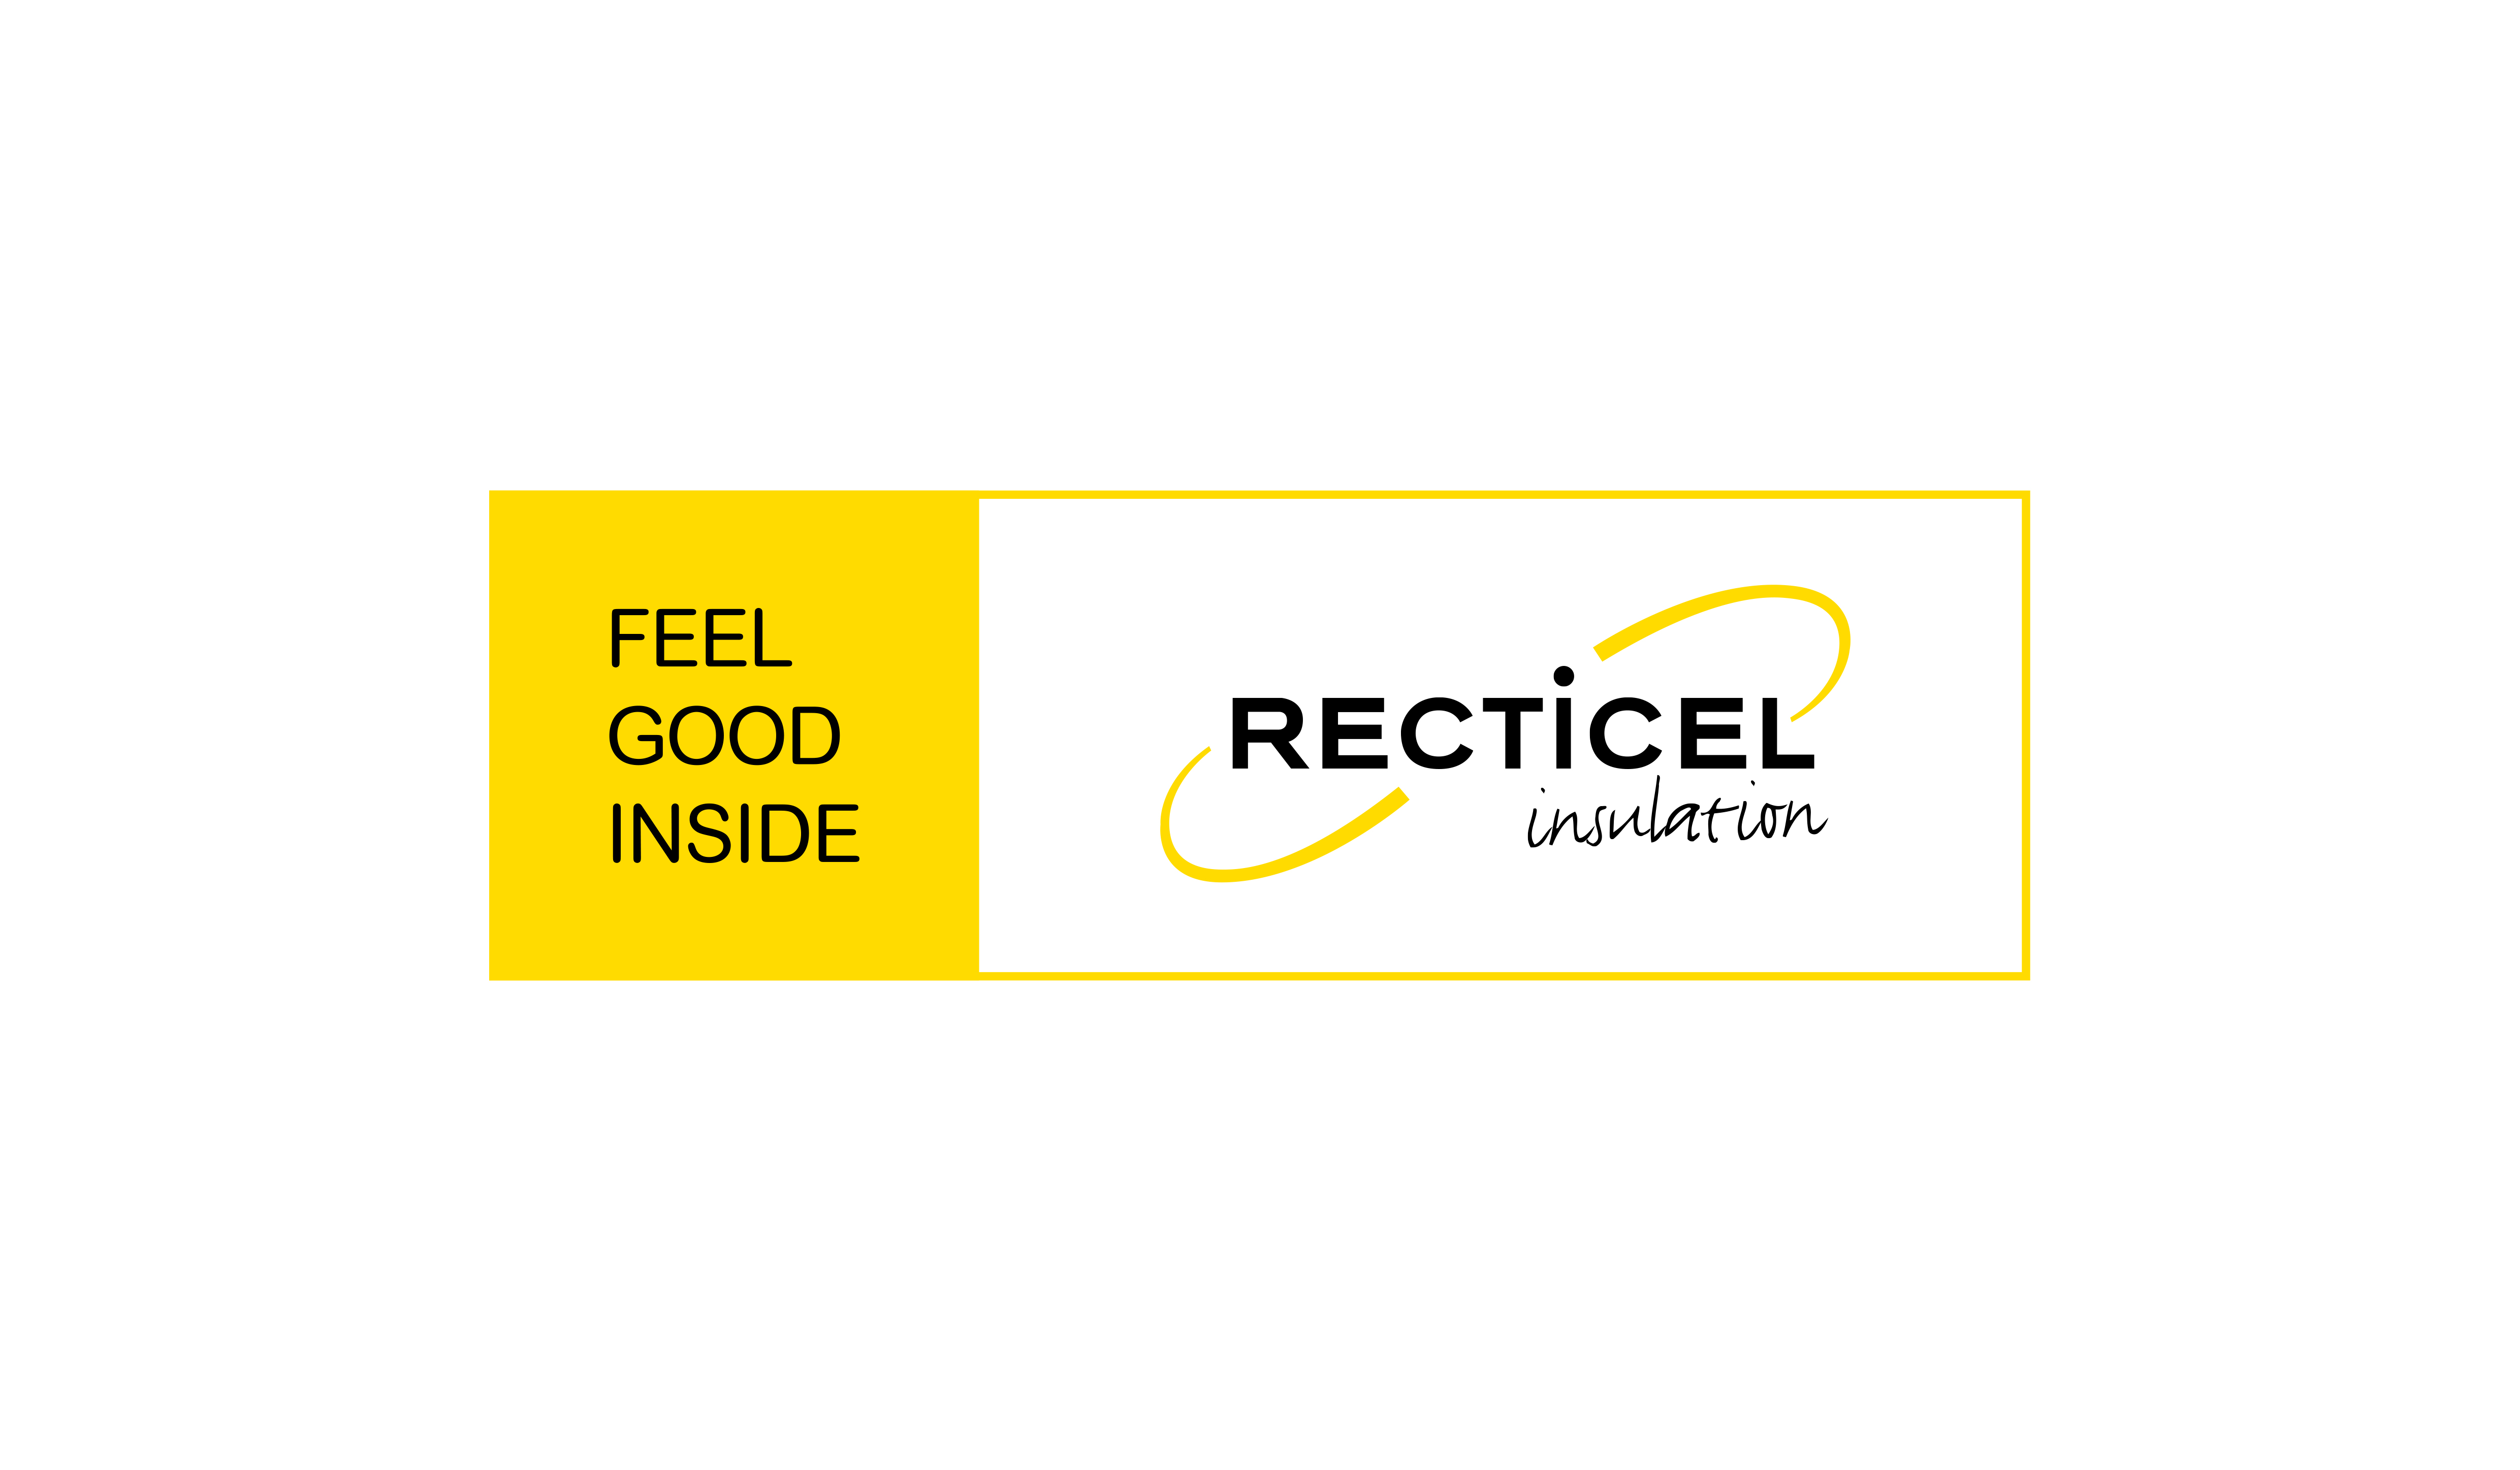 Recticel_Insulation_NEW